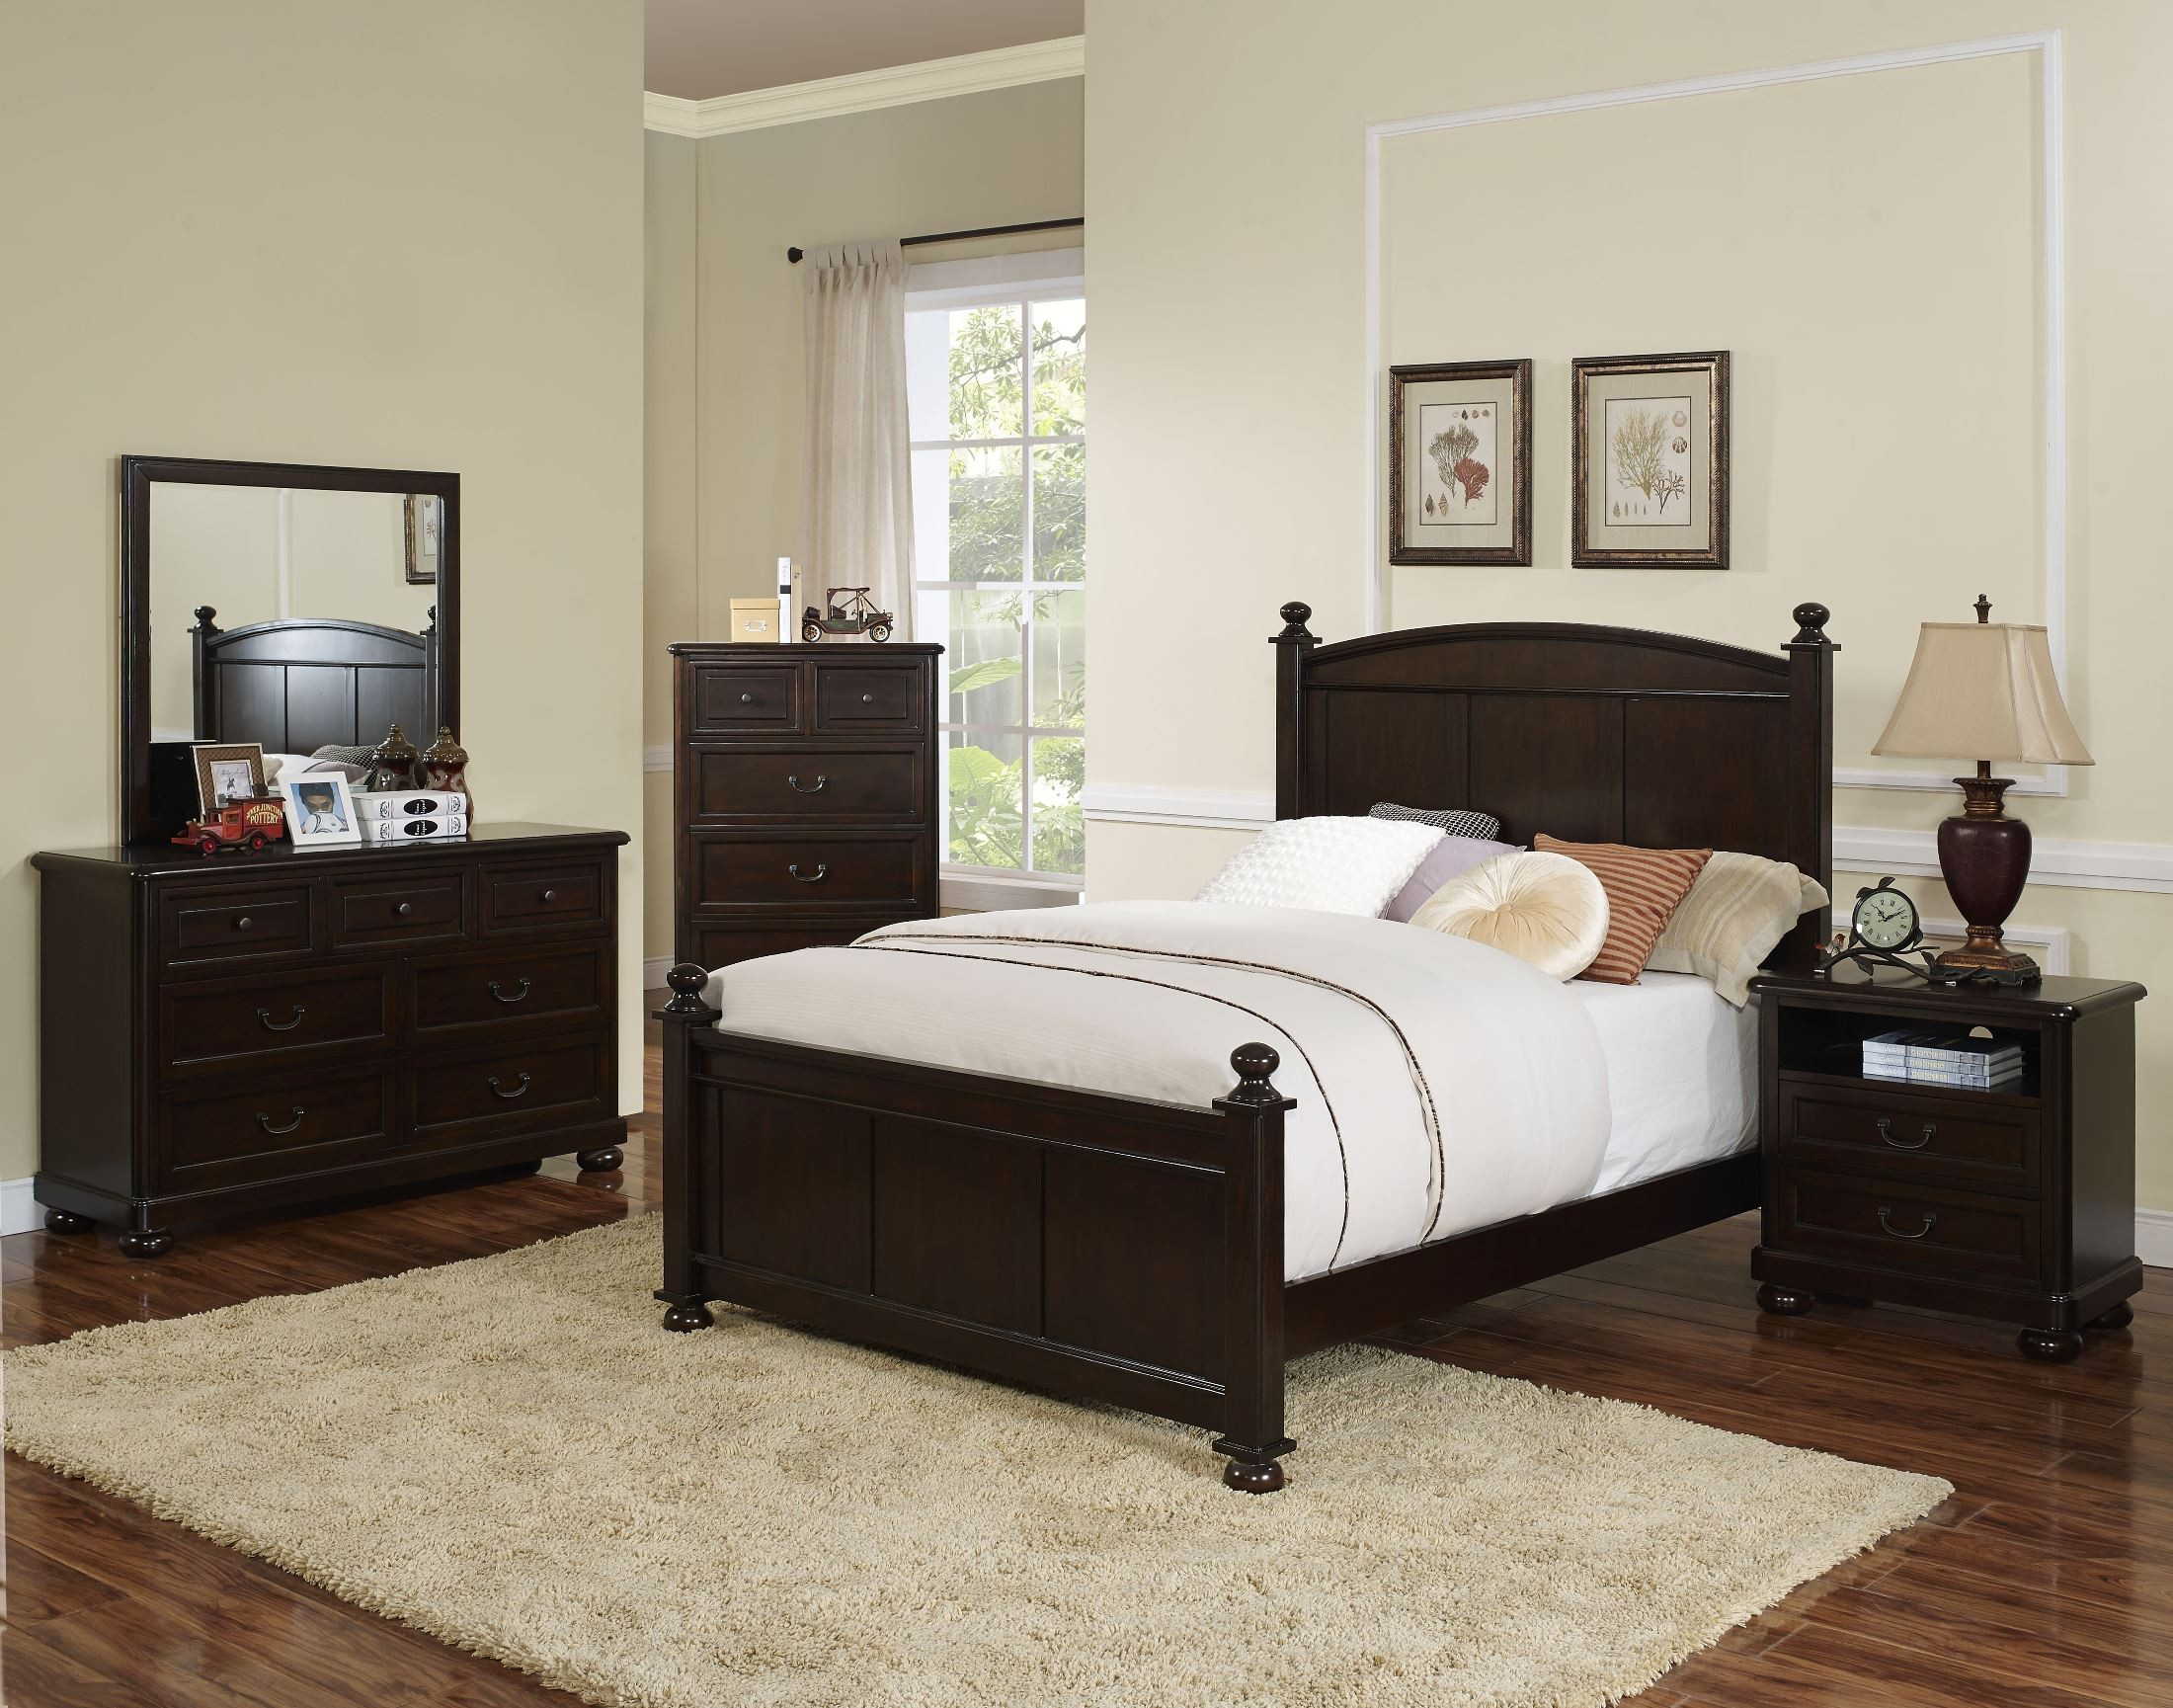 Canyon ridge african chestnut youth poster bedroom set for Youth bedroom furniture